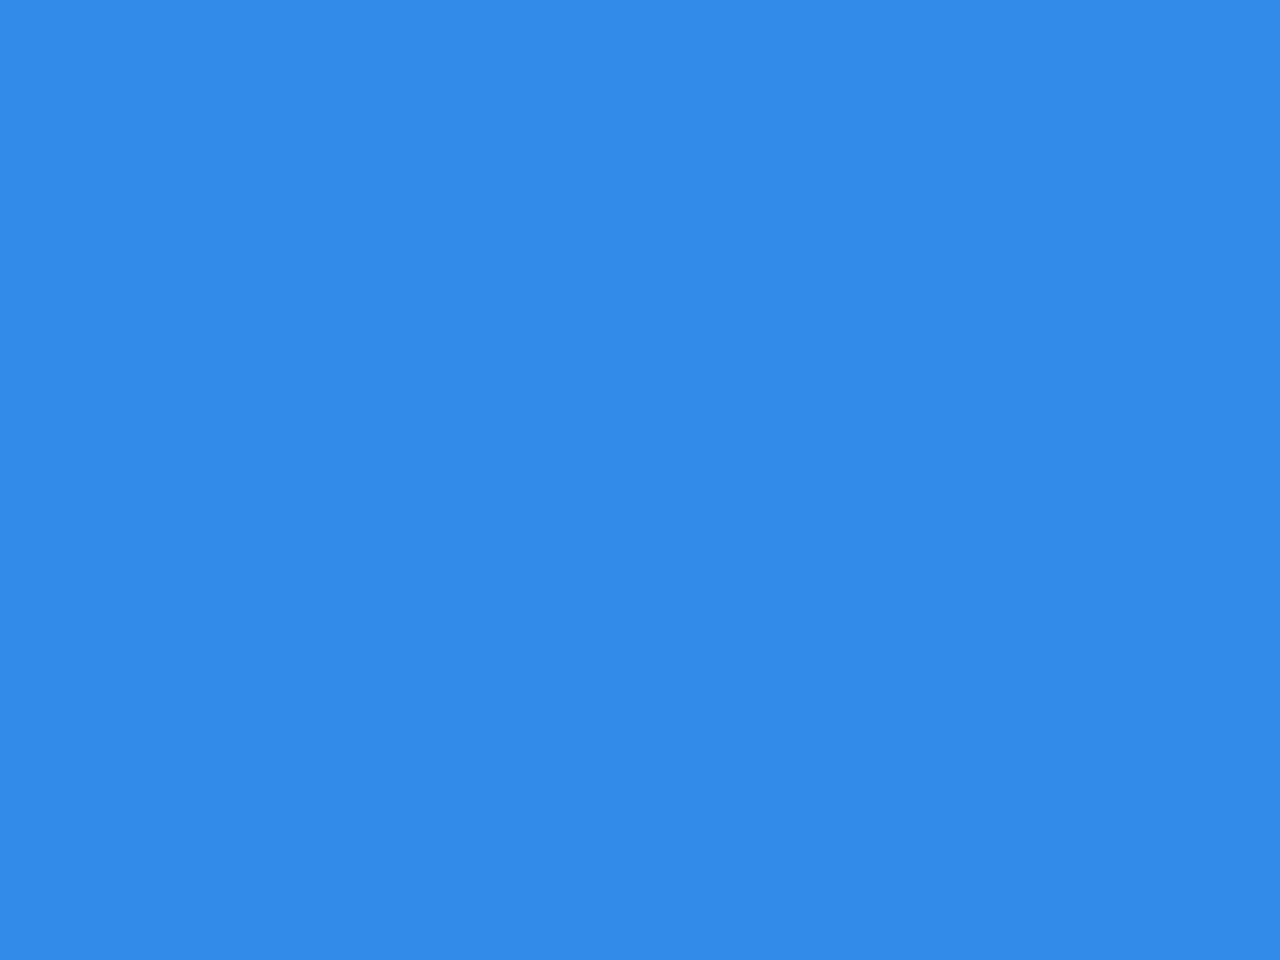 1280x960 Bleu De France Solid Color Background